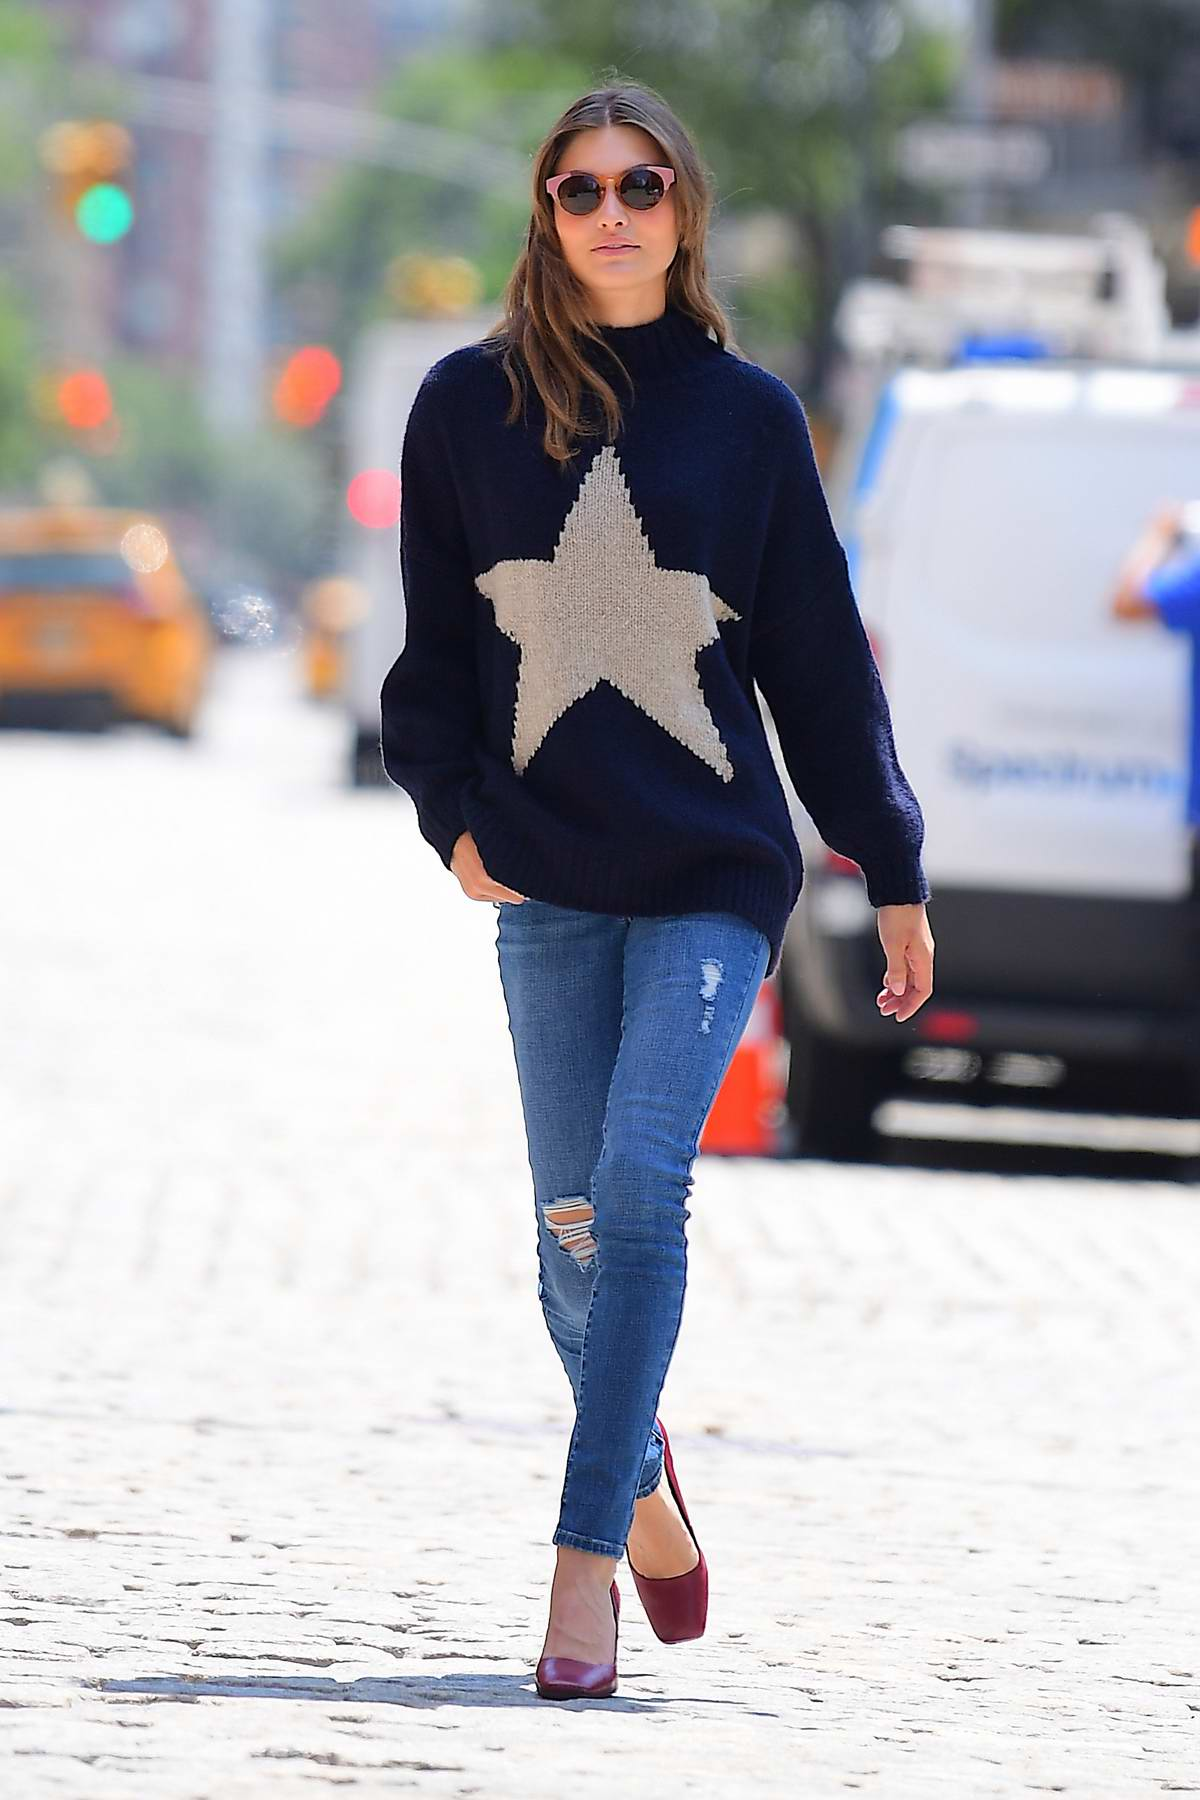 Grace Elizabeth battles the heat as she poses in woolen sweaters and leather jackets for a photoshoot in New York City